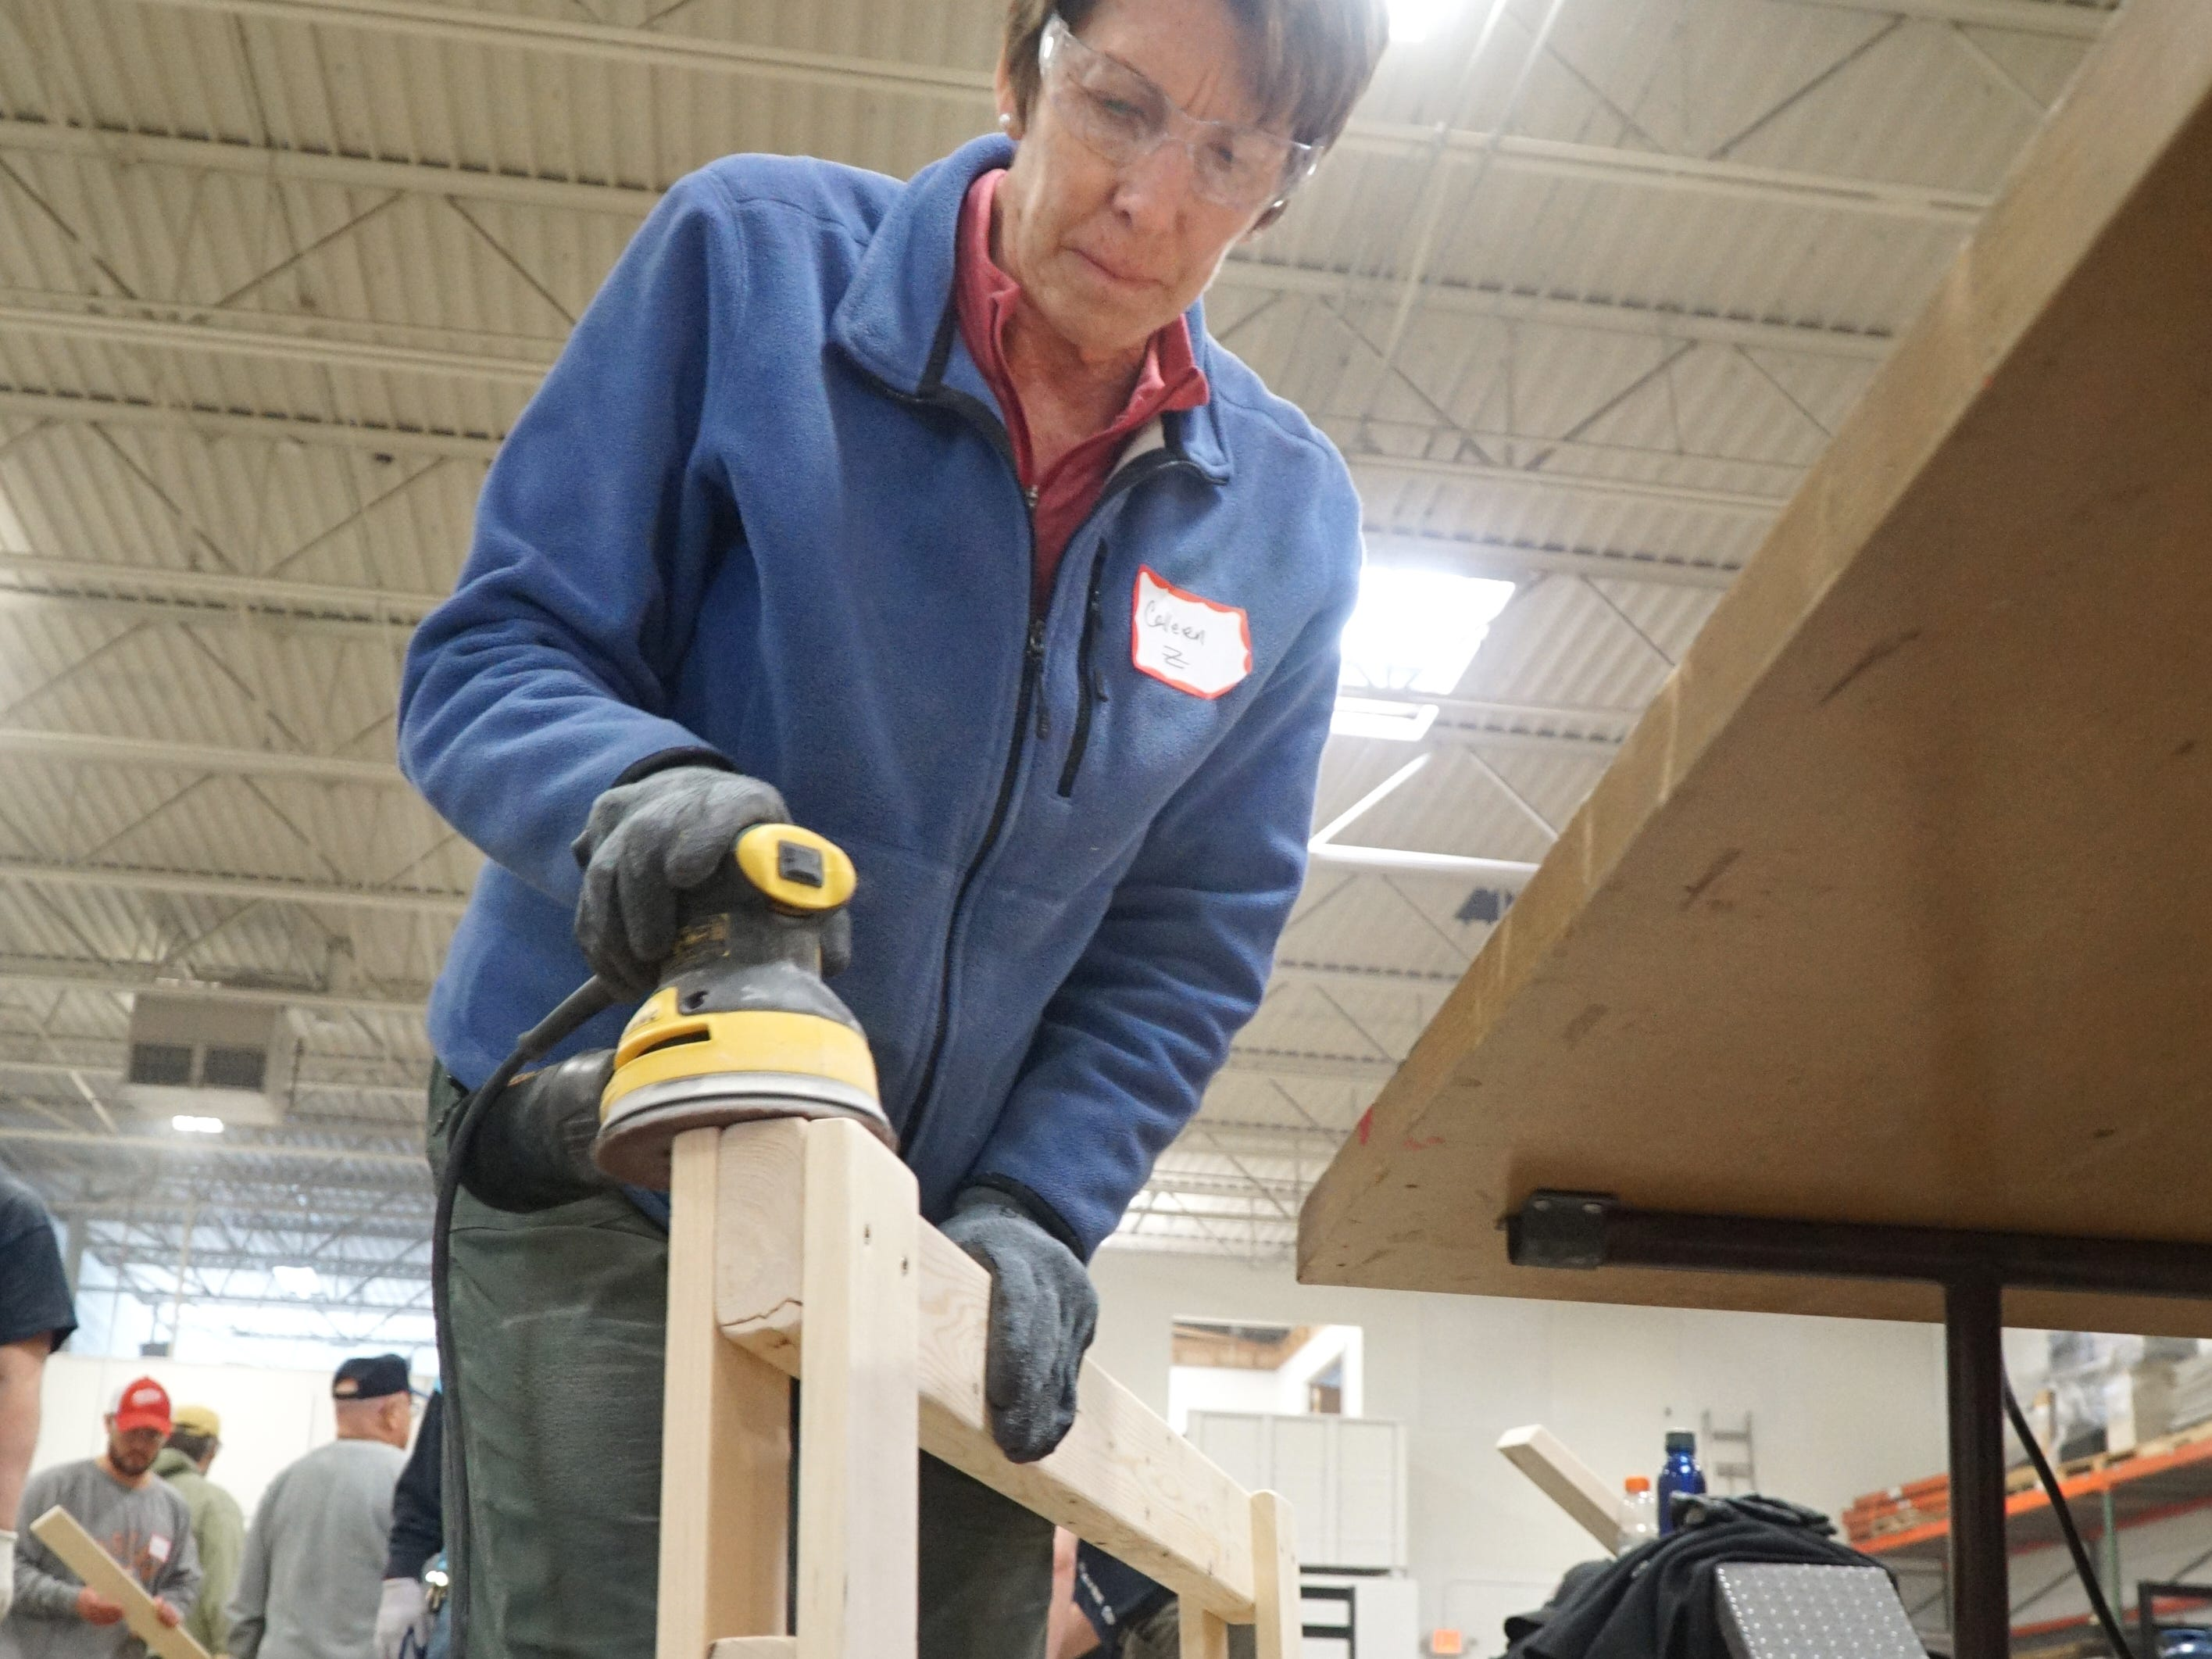 Colleen Zematic works on sanding part of a bunk bed during the April 13 volunteer effort in Livonia.